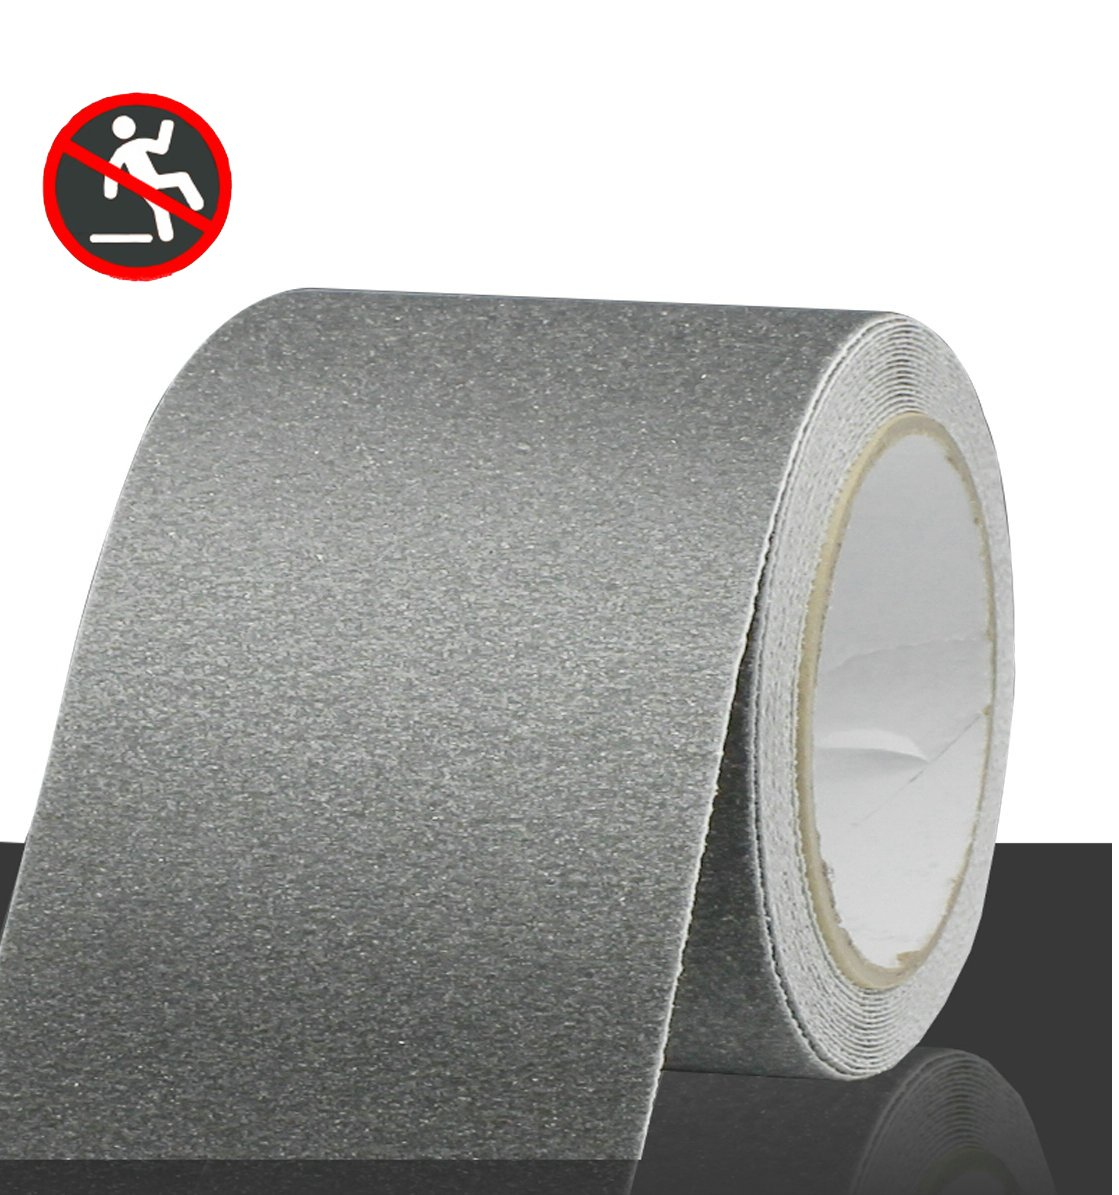 Professional Non-Slip Safety Tape, High Traction Grip for Stairs, Steps, Boats, Garage, Ladders, Slip-Resistant Strong Adhesive Treads, Indoor Outdoor (Width: 4 in × Length: 16.4 ft, Grey)